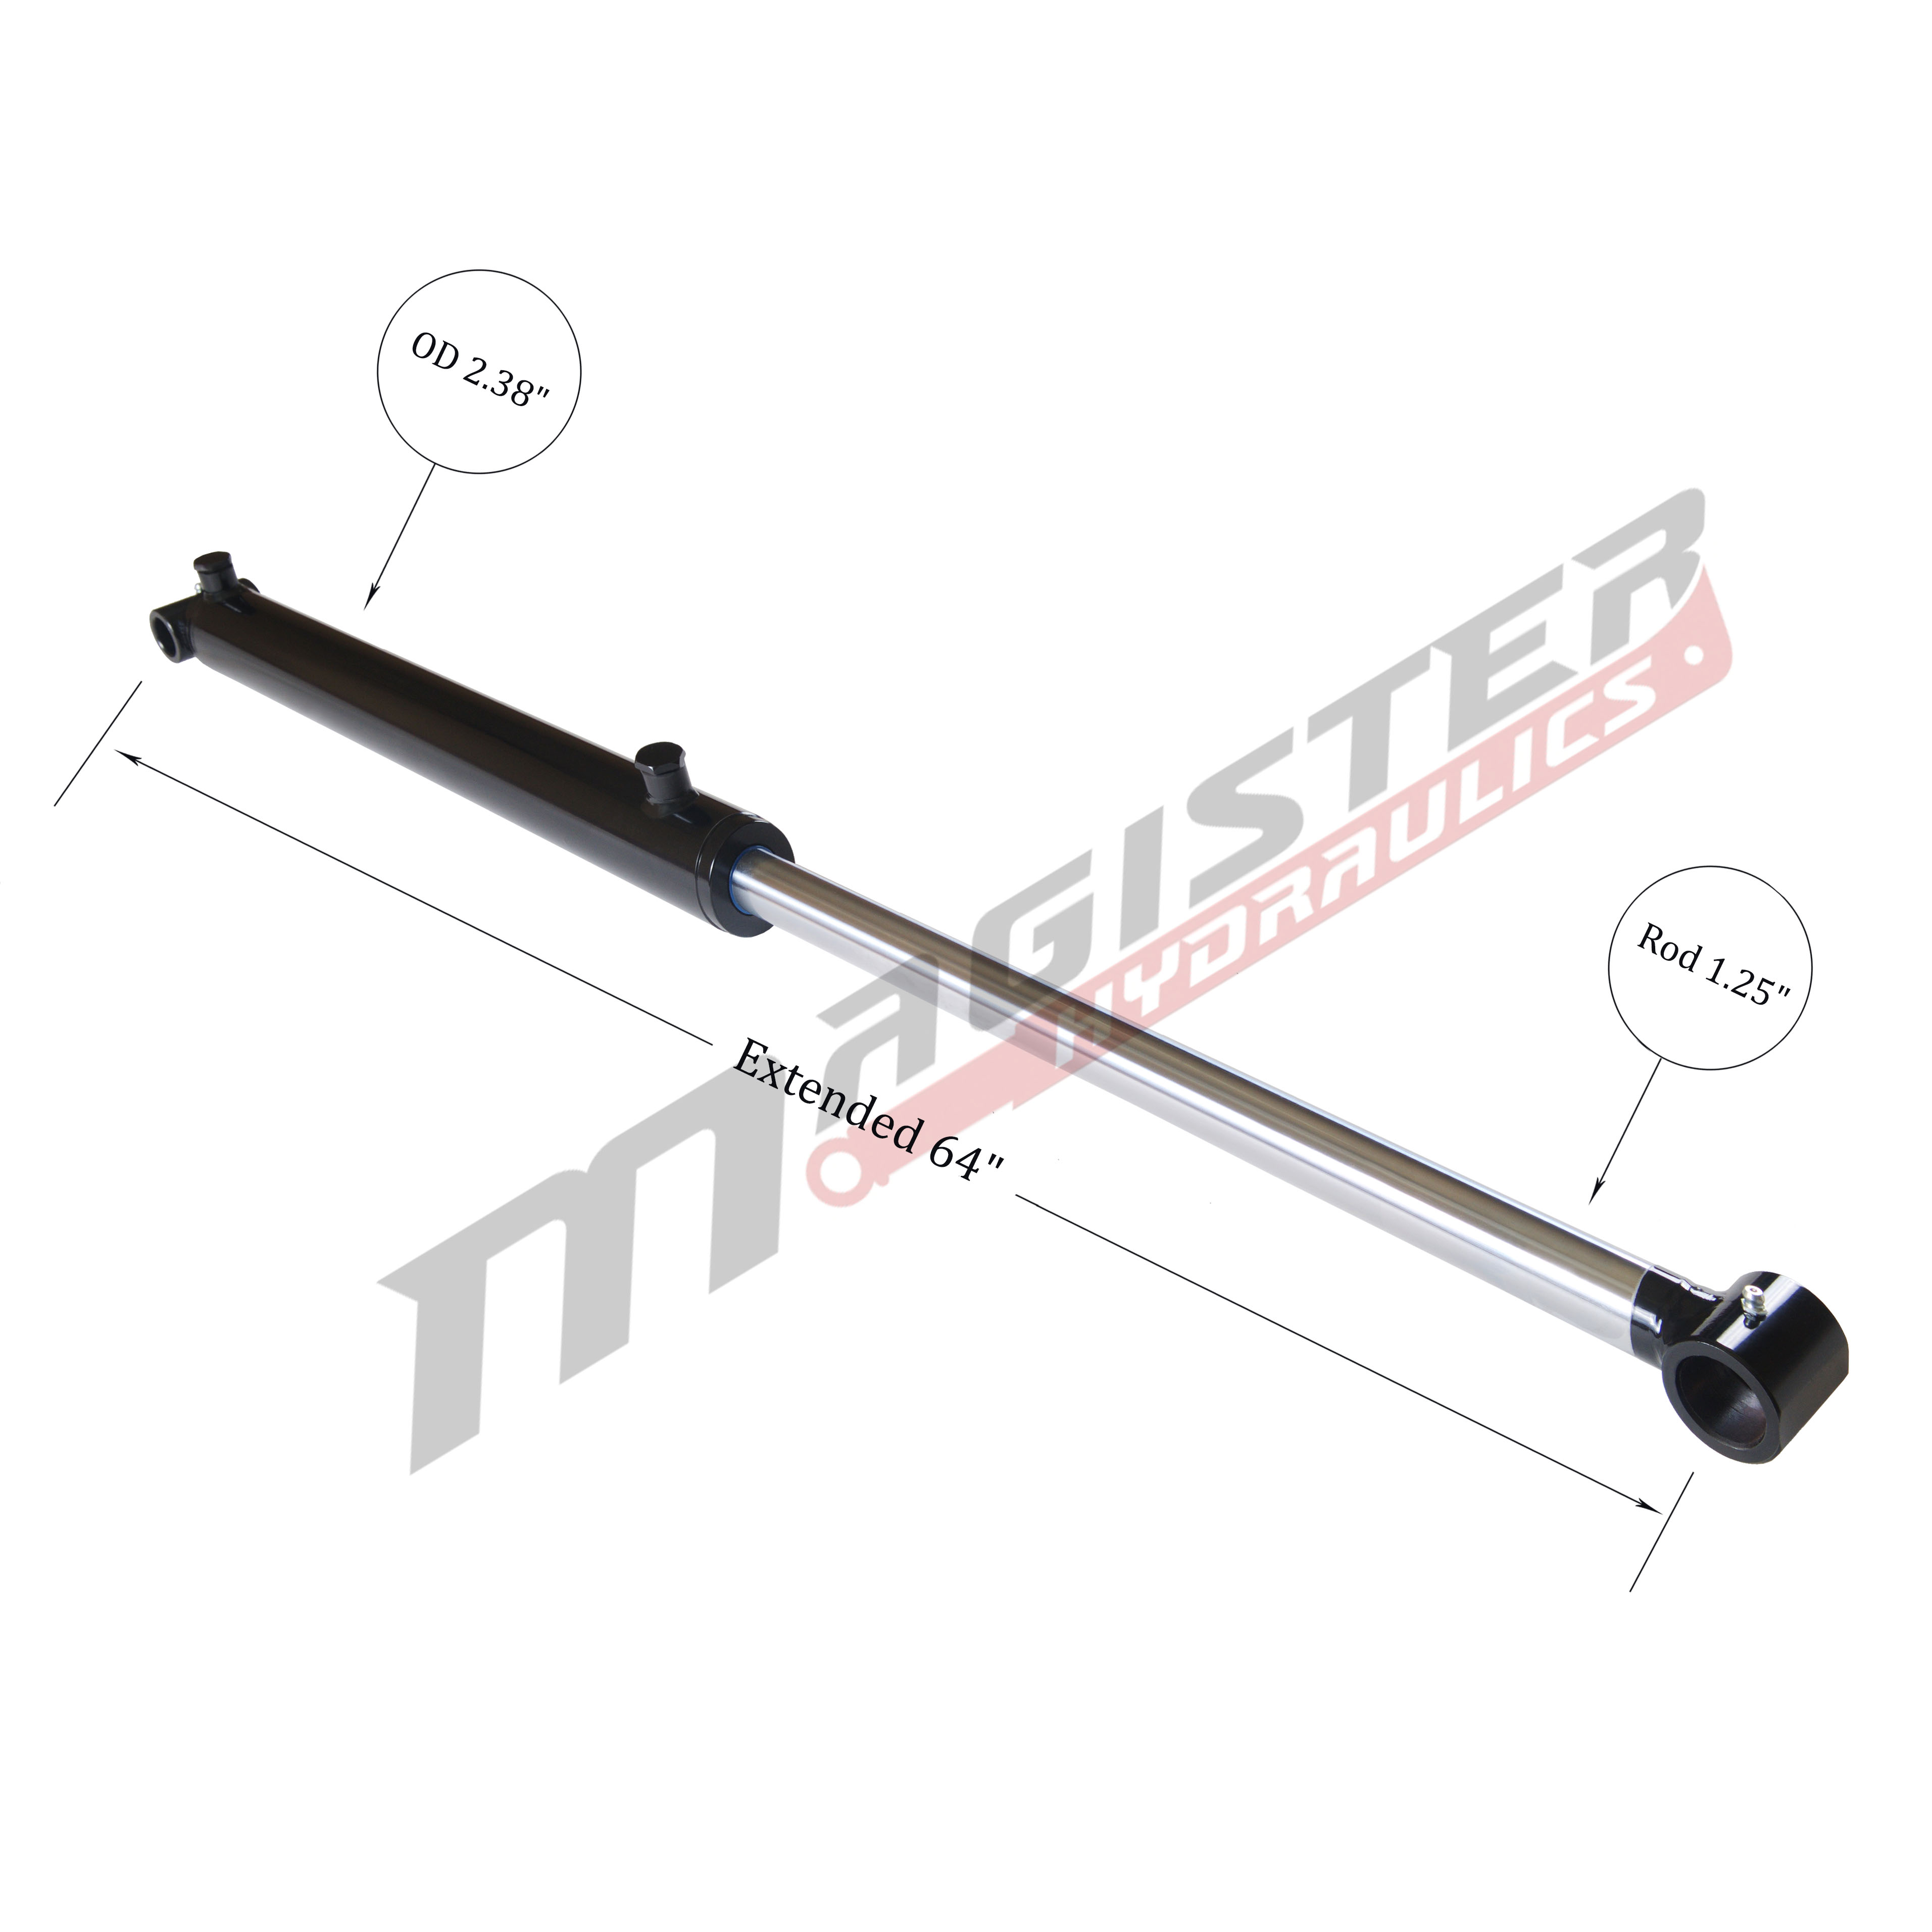 2 bore x 28 stroke hydraulic cylinder, welded cross tube double acting cylinder | Magister Hydraulics